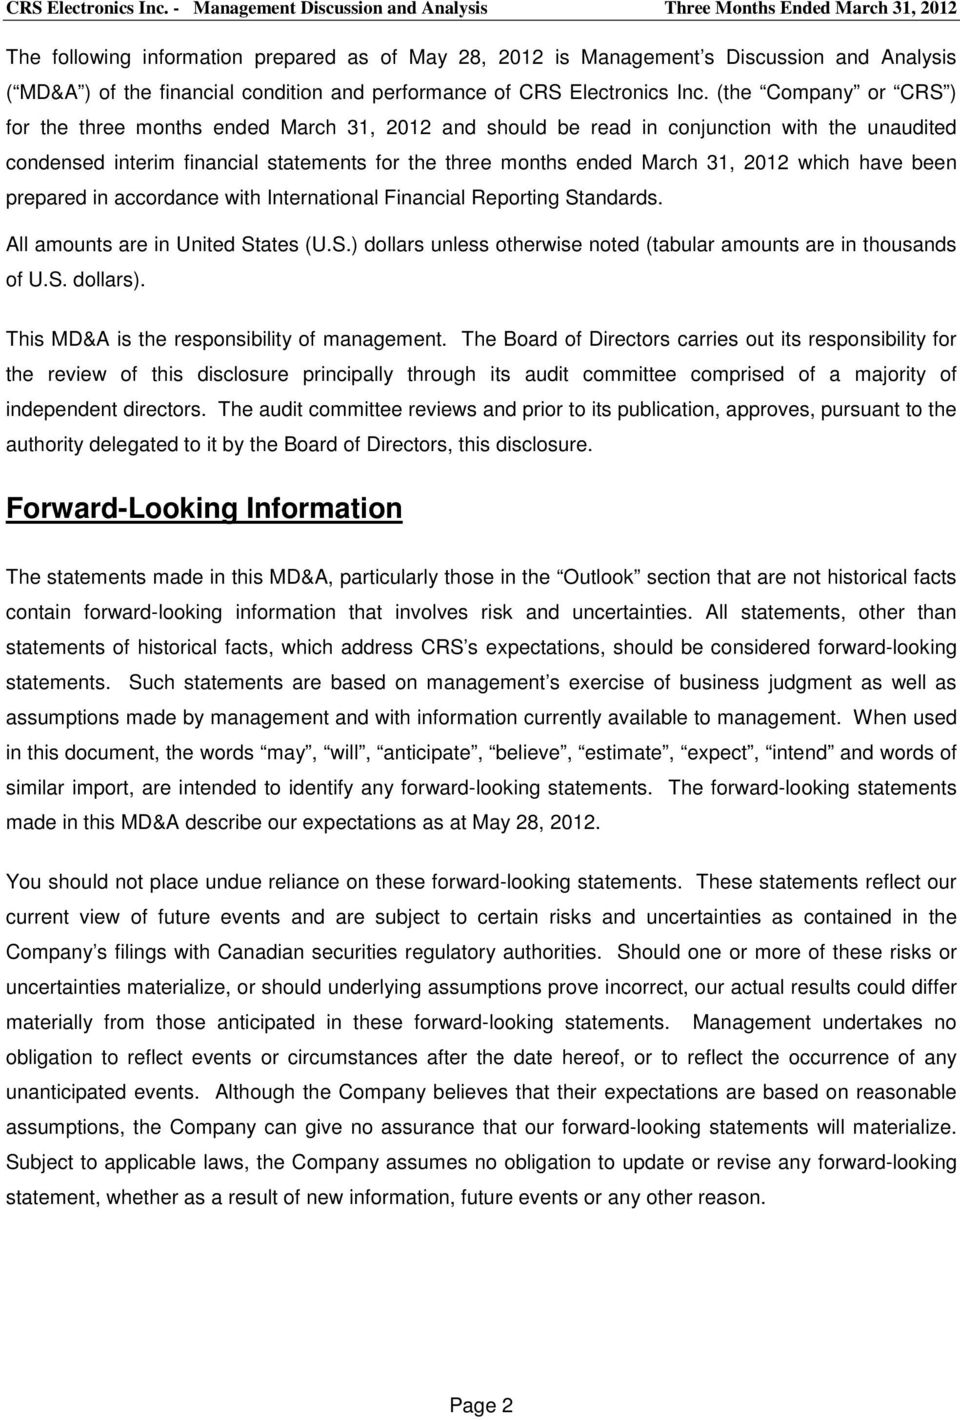 condition and performance of  (the Company or CRS ) for the three months ended March 31, 2012 and should be read in conjunction with the unaudited condensed interim financial statements for the three